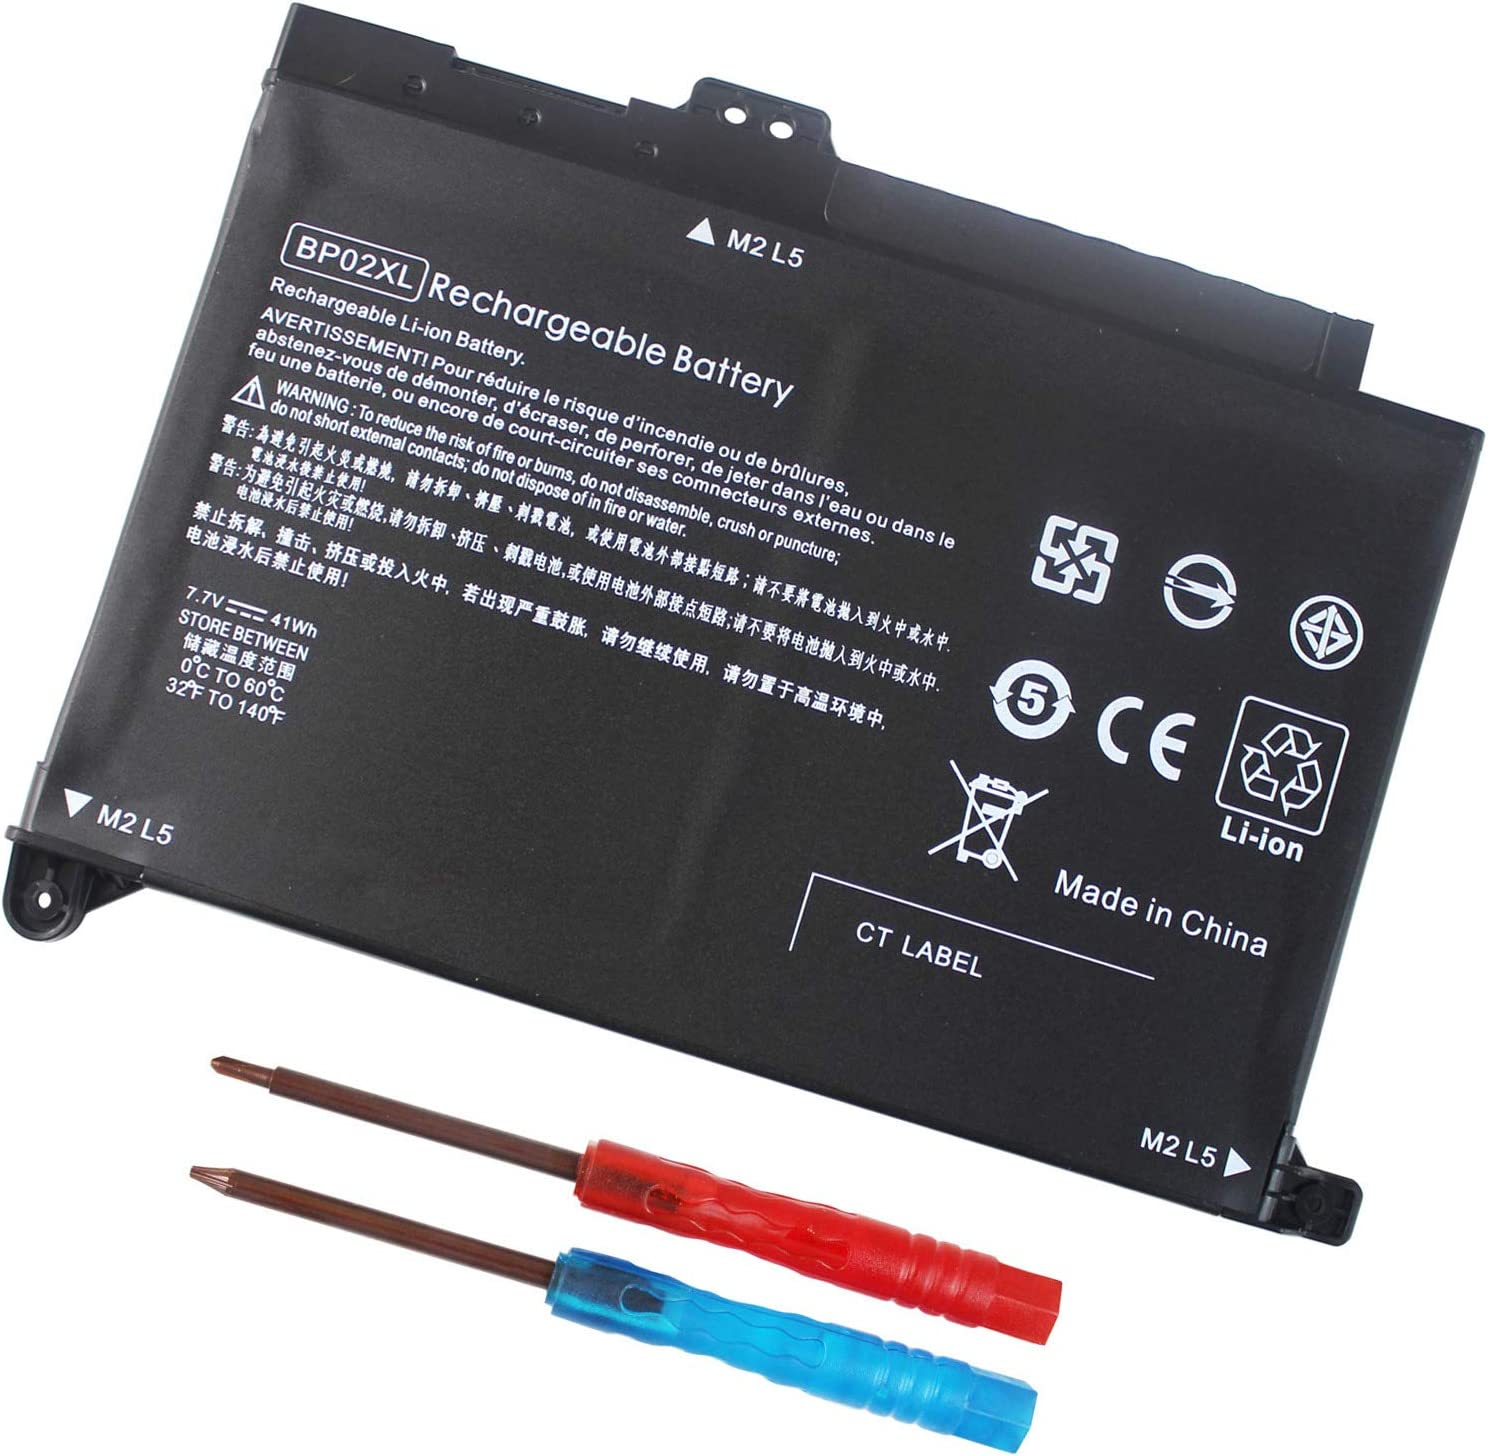 BP02XL 849909-850 Battery for HP Pavilion 15-AU000 15-AW000 15T-AW000 Series 15-AU063CL 15-AU091NR 15-AU010WM 15- AU123CL 15-AW068NR 849569-421 849909-855 849569-542 - 12 Months Warranty